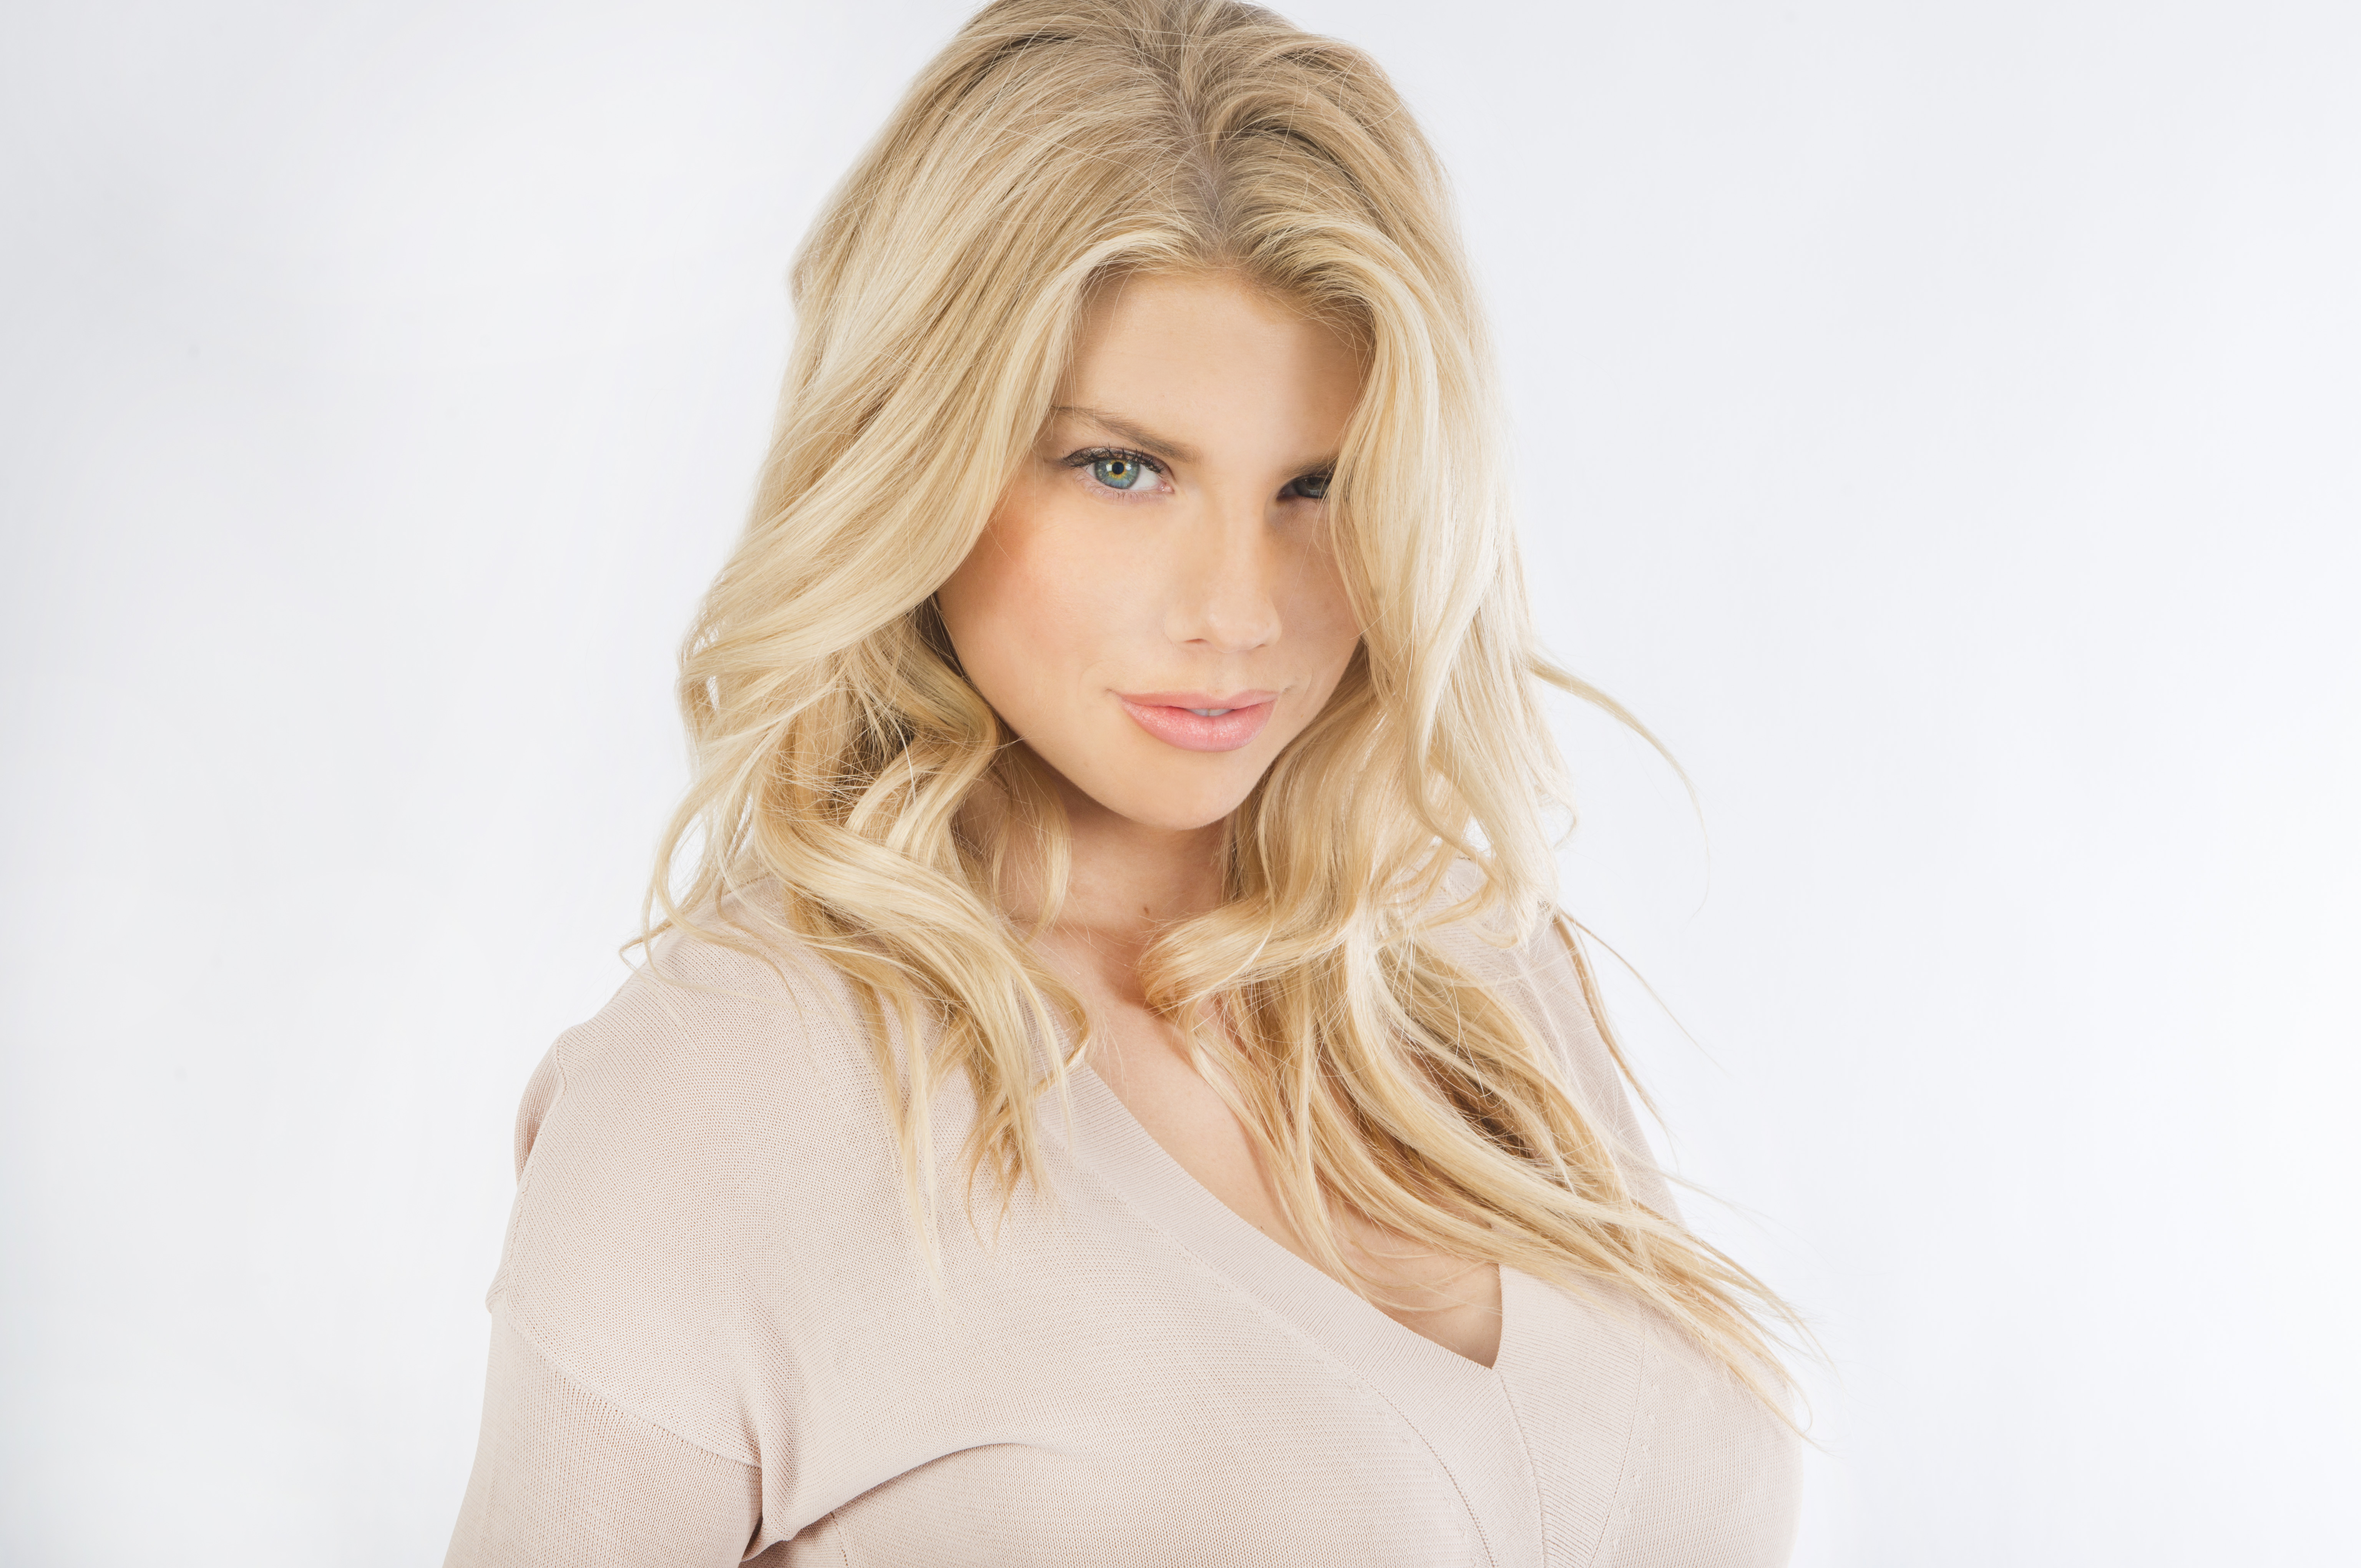 mckinney spanish girl personals Latina singles in mckinney are among the most sociable in the southern usa, which is why this online dating service is so successful at starting relationships in texas are you on the lookout for latinas to chat to on a casual basis.